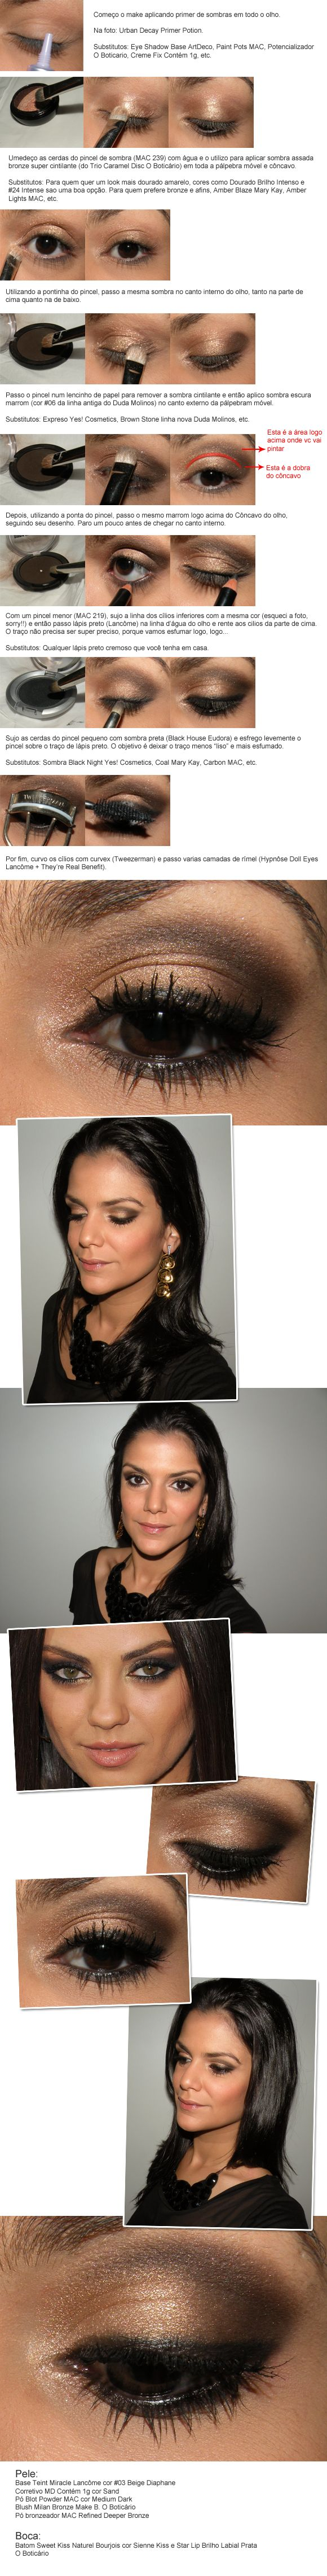 Sparkly brown look (recreating one worn by Mila Kunis) - not in English but detailed pictures